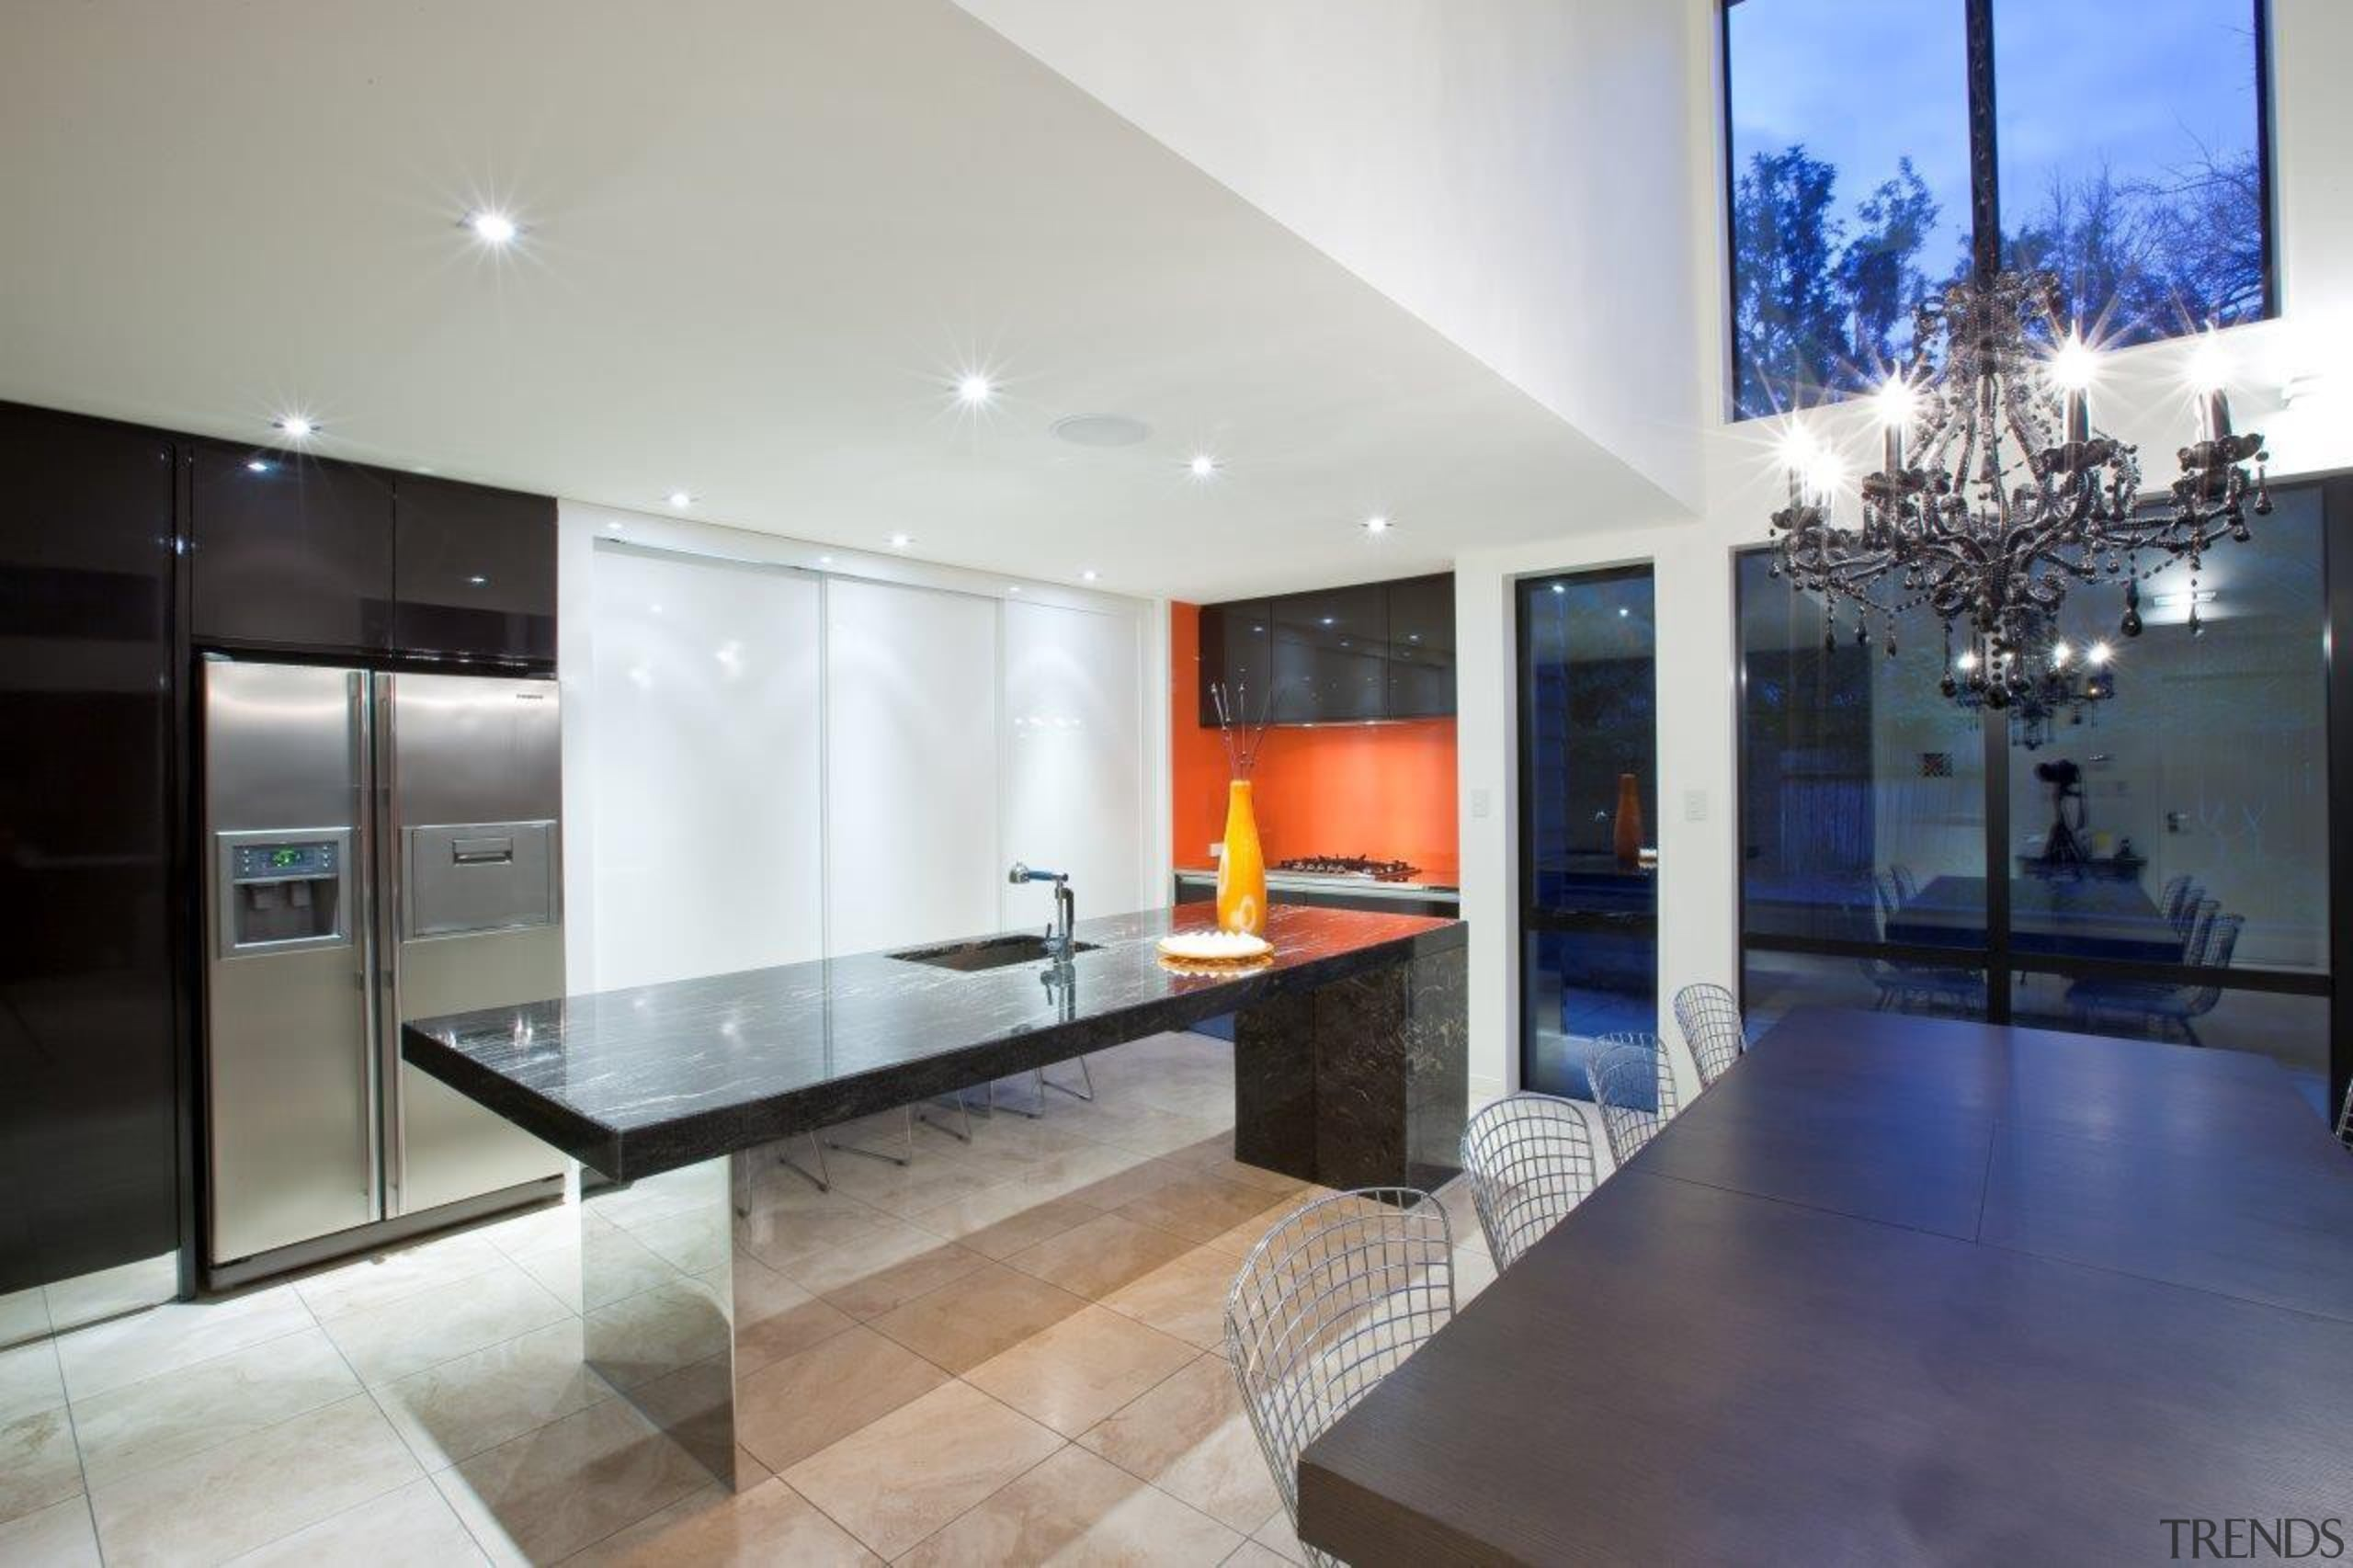 wellington kitchen 4.jpg - wellington_kitchen_4.jpg - architecture | architecture, ceiling, countertop, floor, house, interior design, kitchen, living room, property, real estate, gray